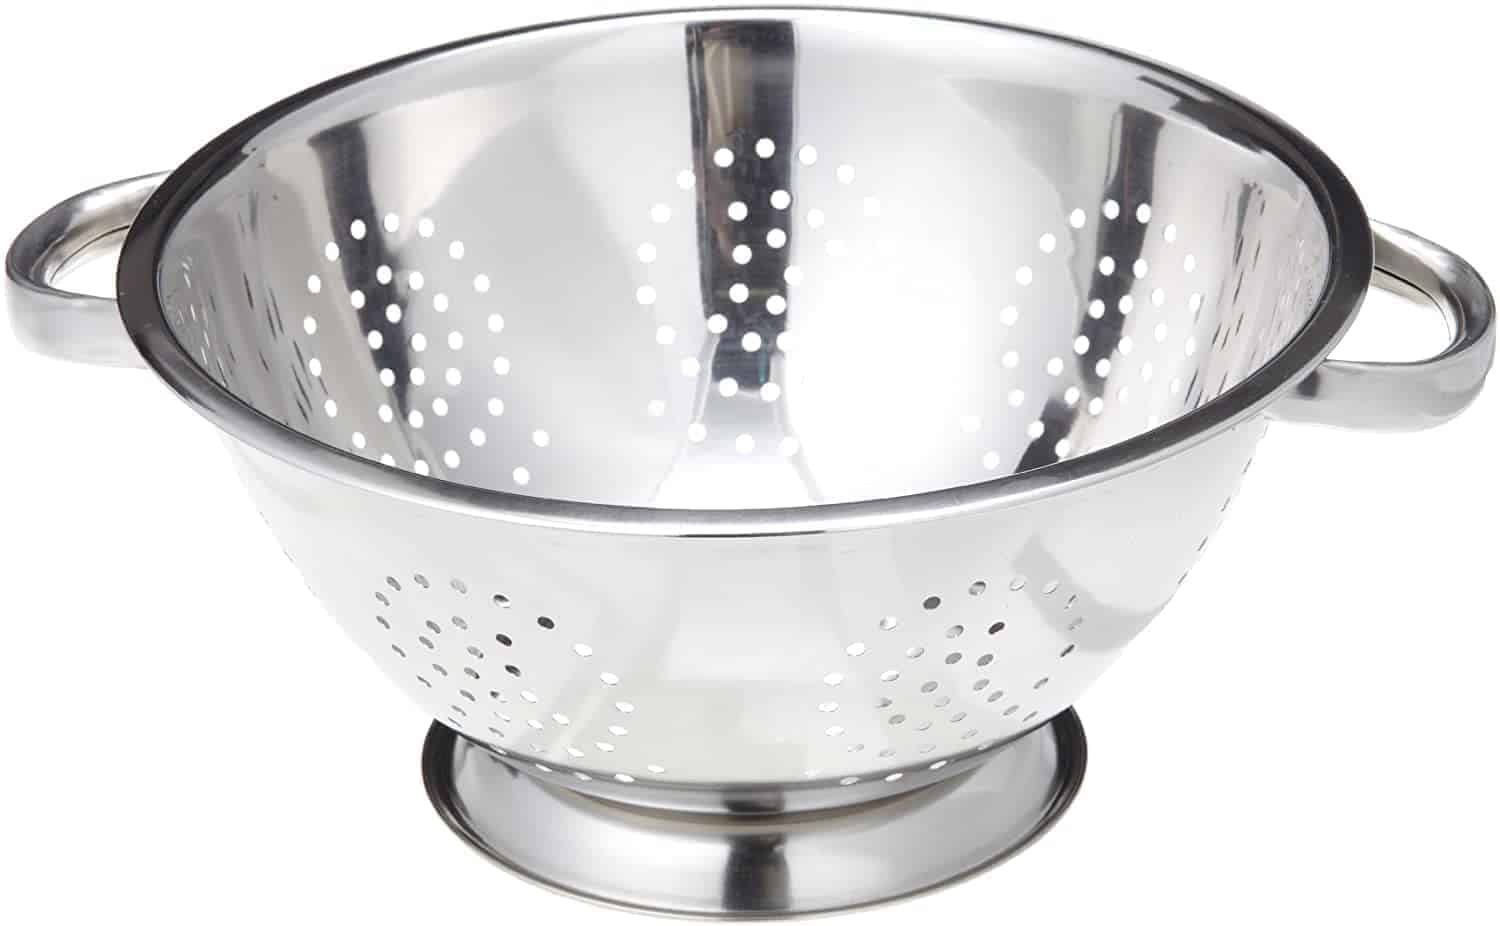 ExcelSteel Heavy Duty Handles and Self-draining Solid Ring Base Stainless Steel Colander